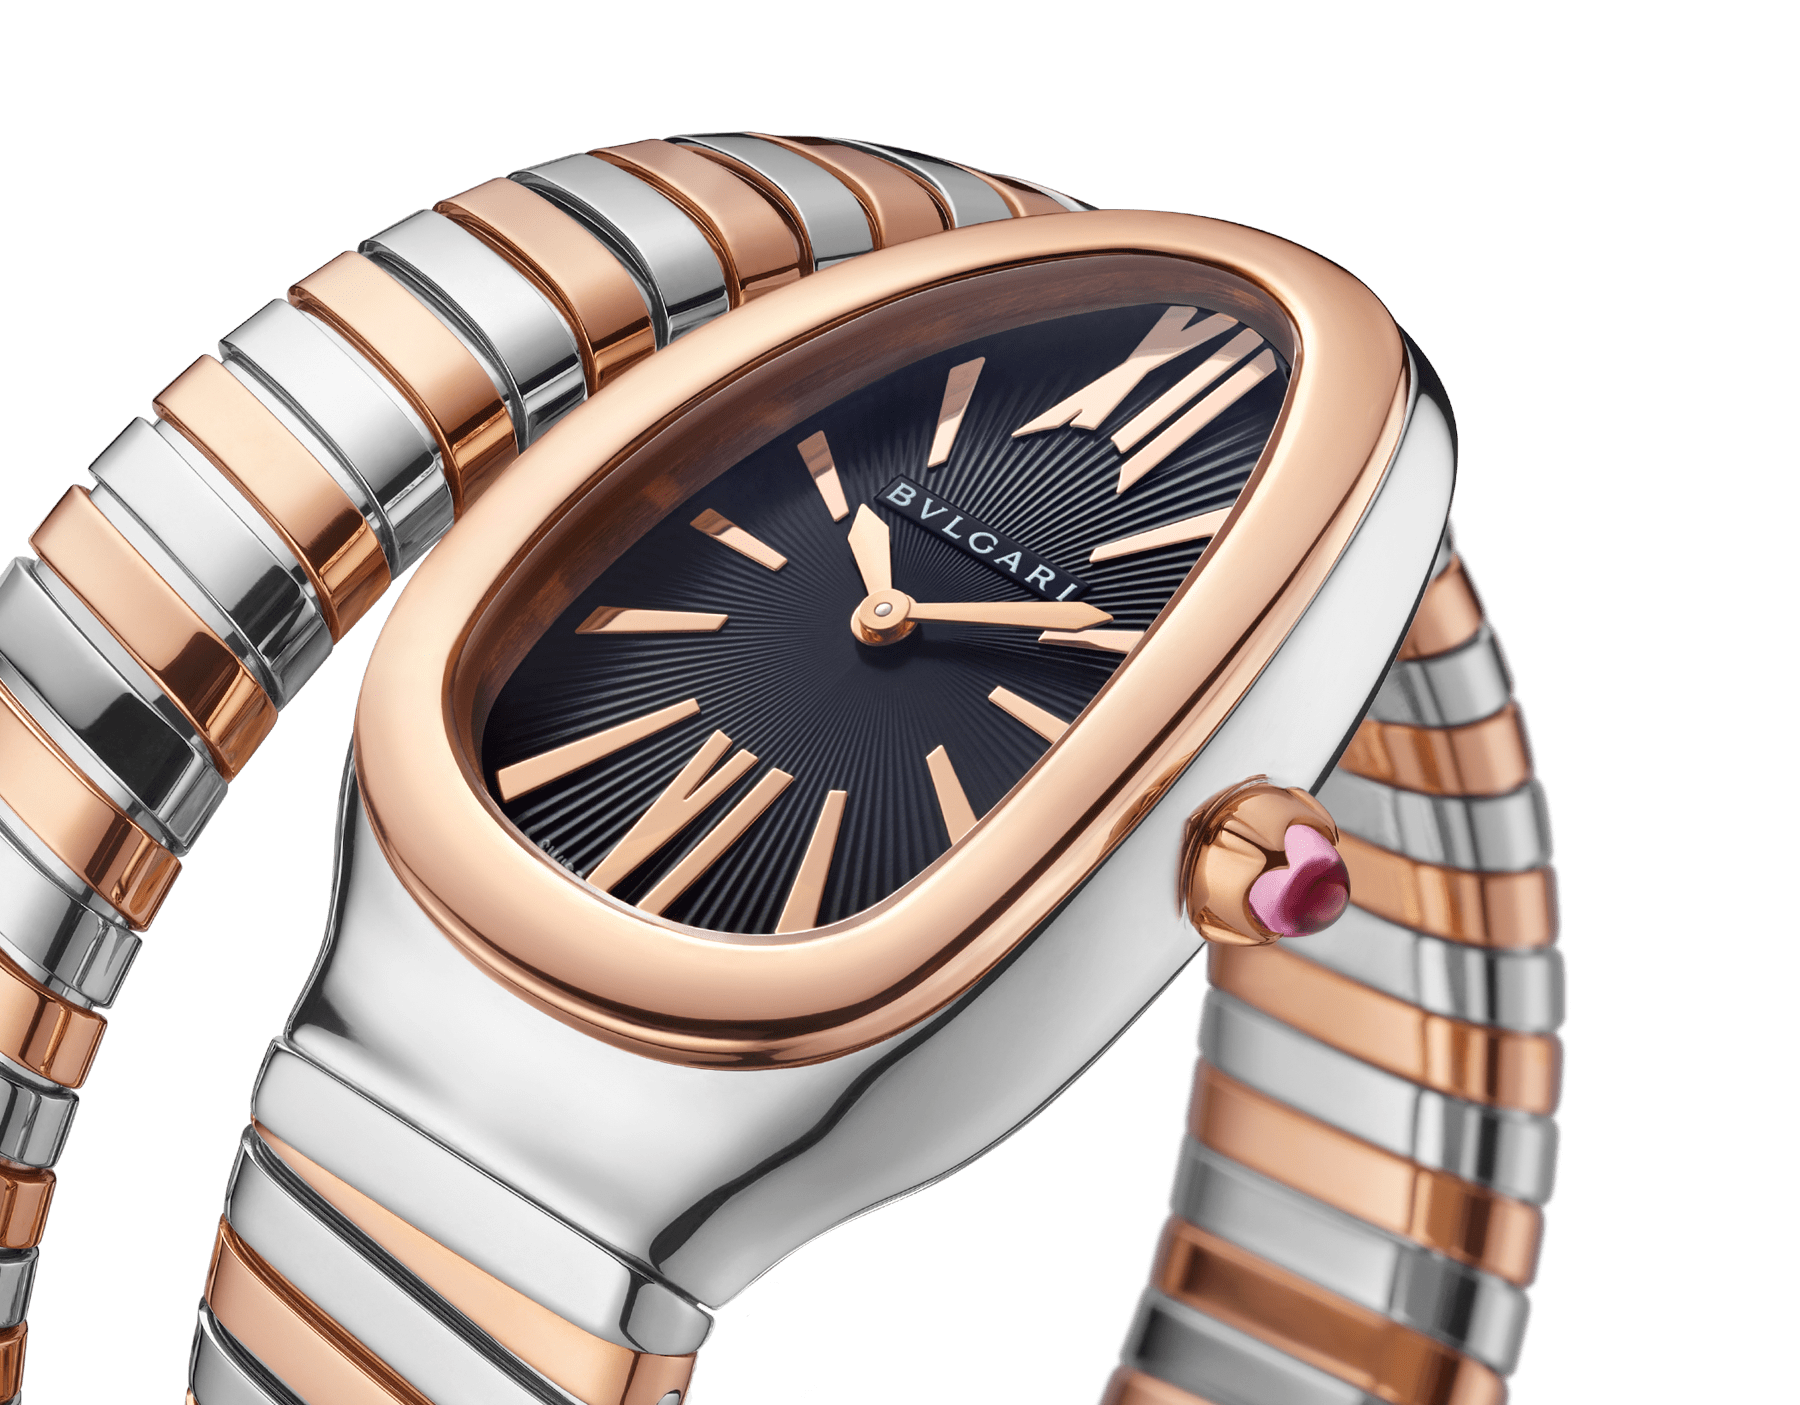 Serpenti Tubogas single spiral watch in 18 kt rose gold and stainless steel case and bracelet, with black opaline dial. 102123 image 3